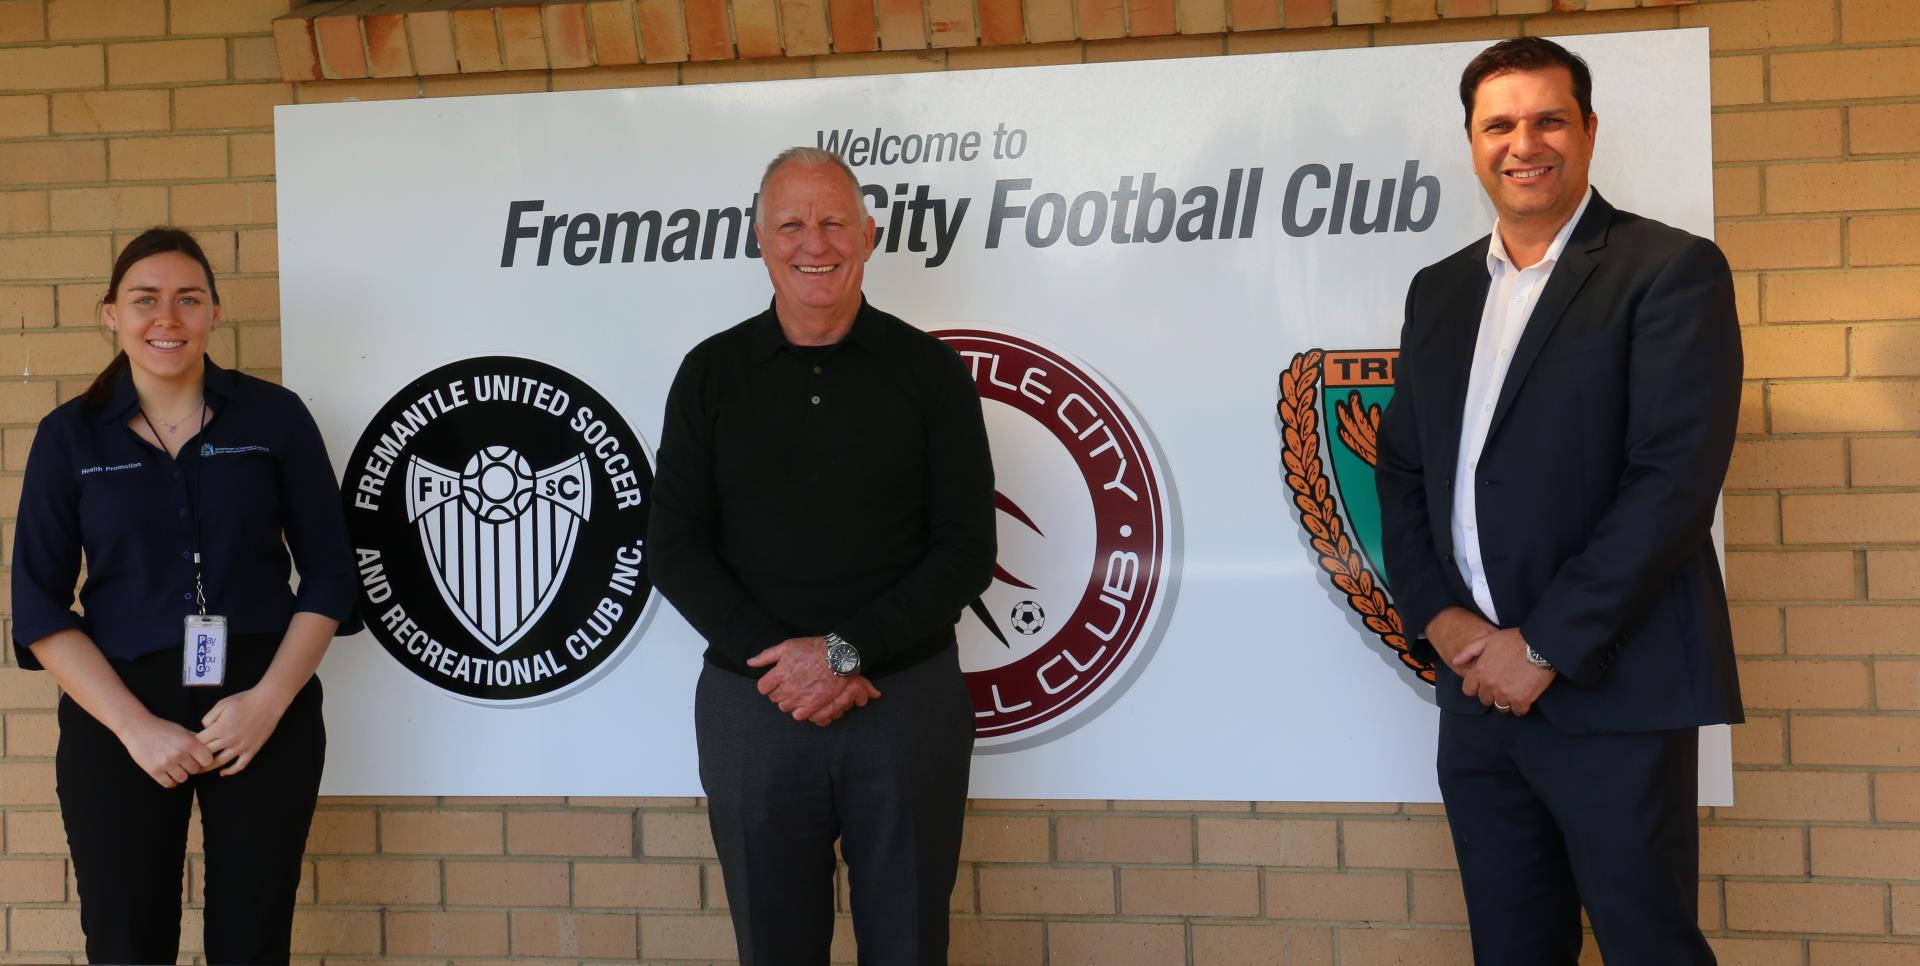 Fremantle City Football Club kicks off with healthy choices